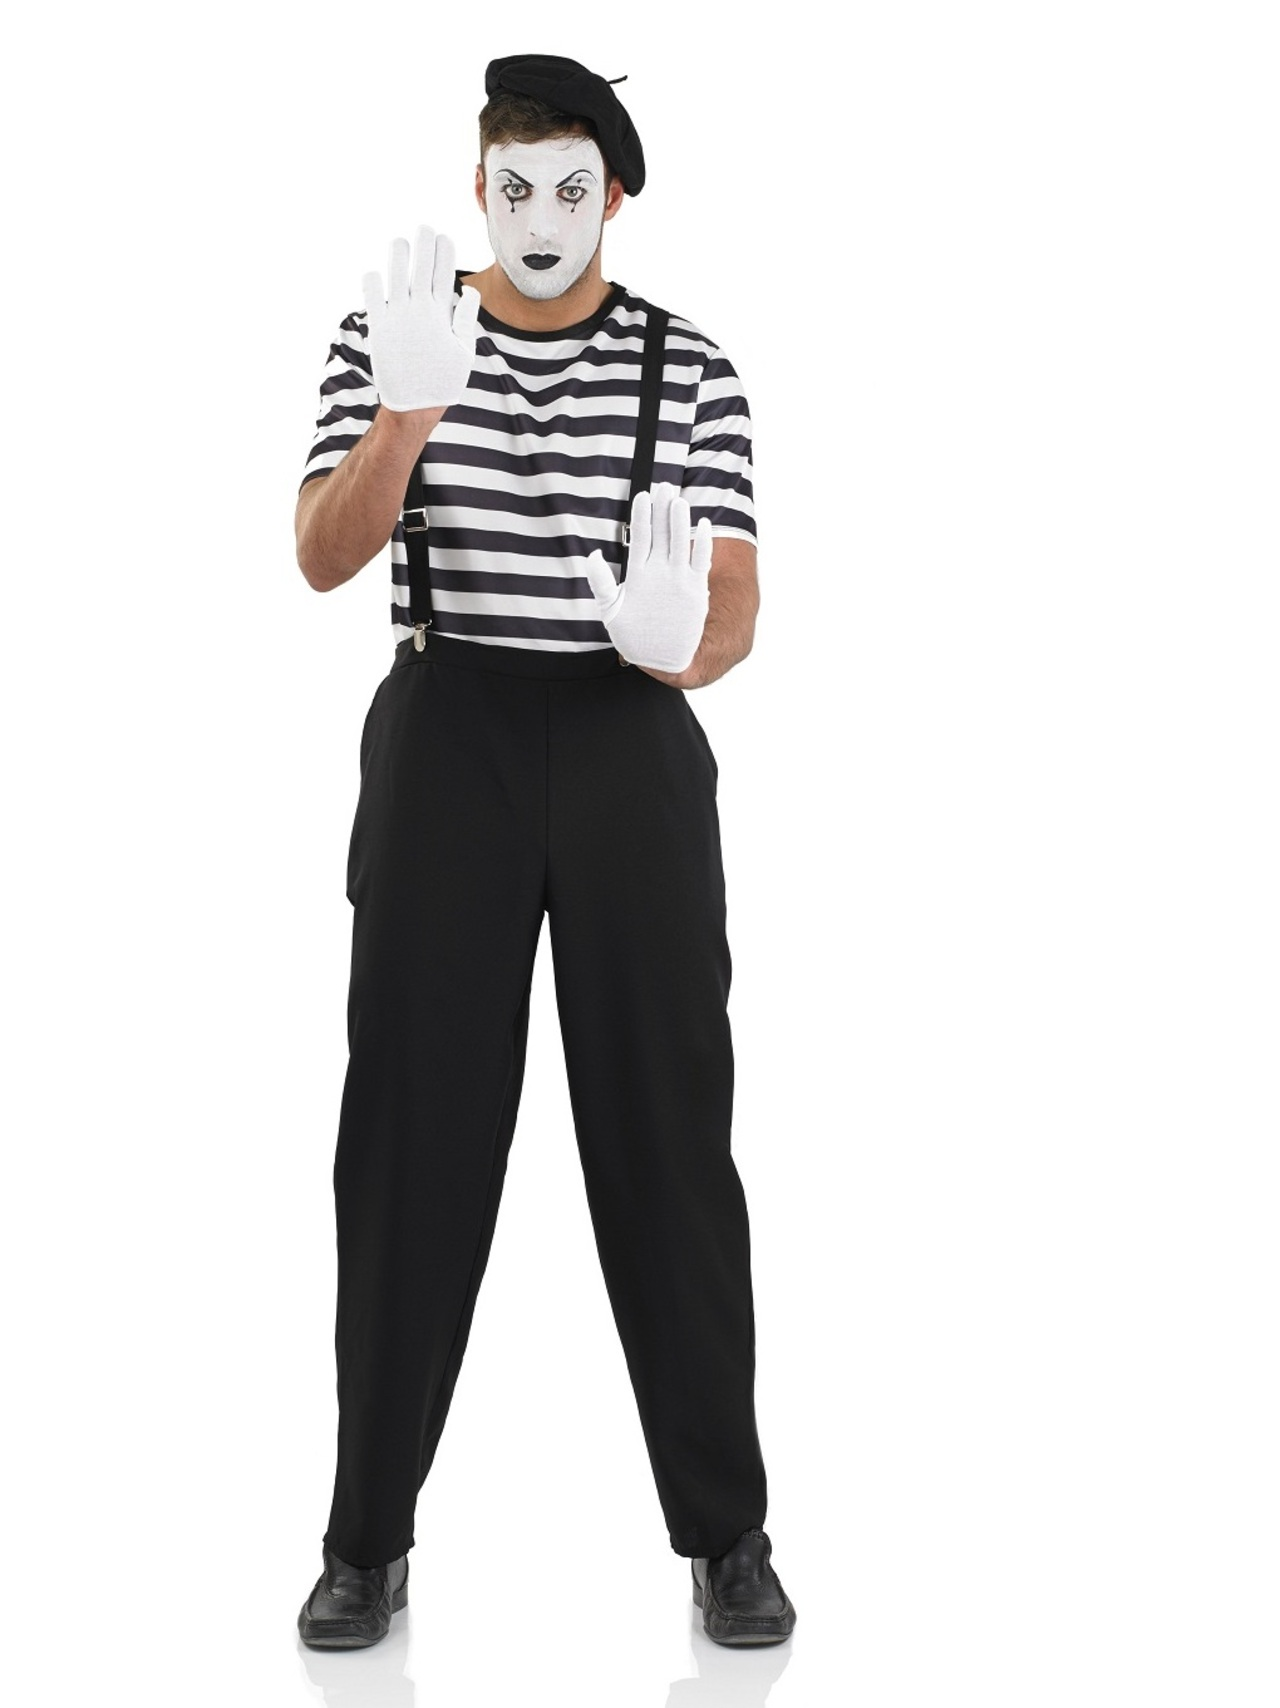 Mime homme